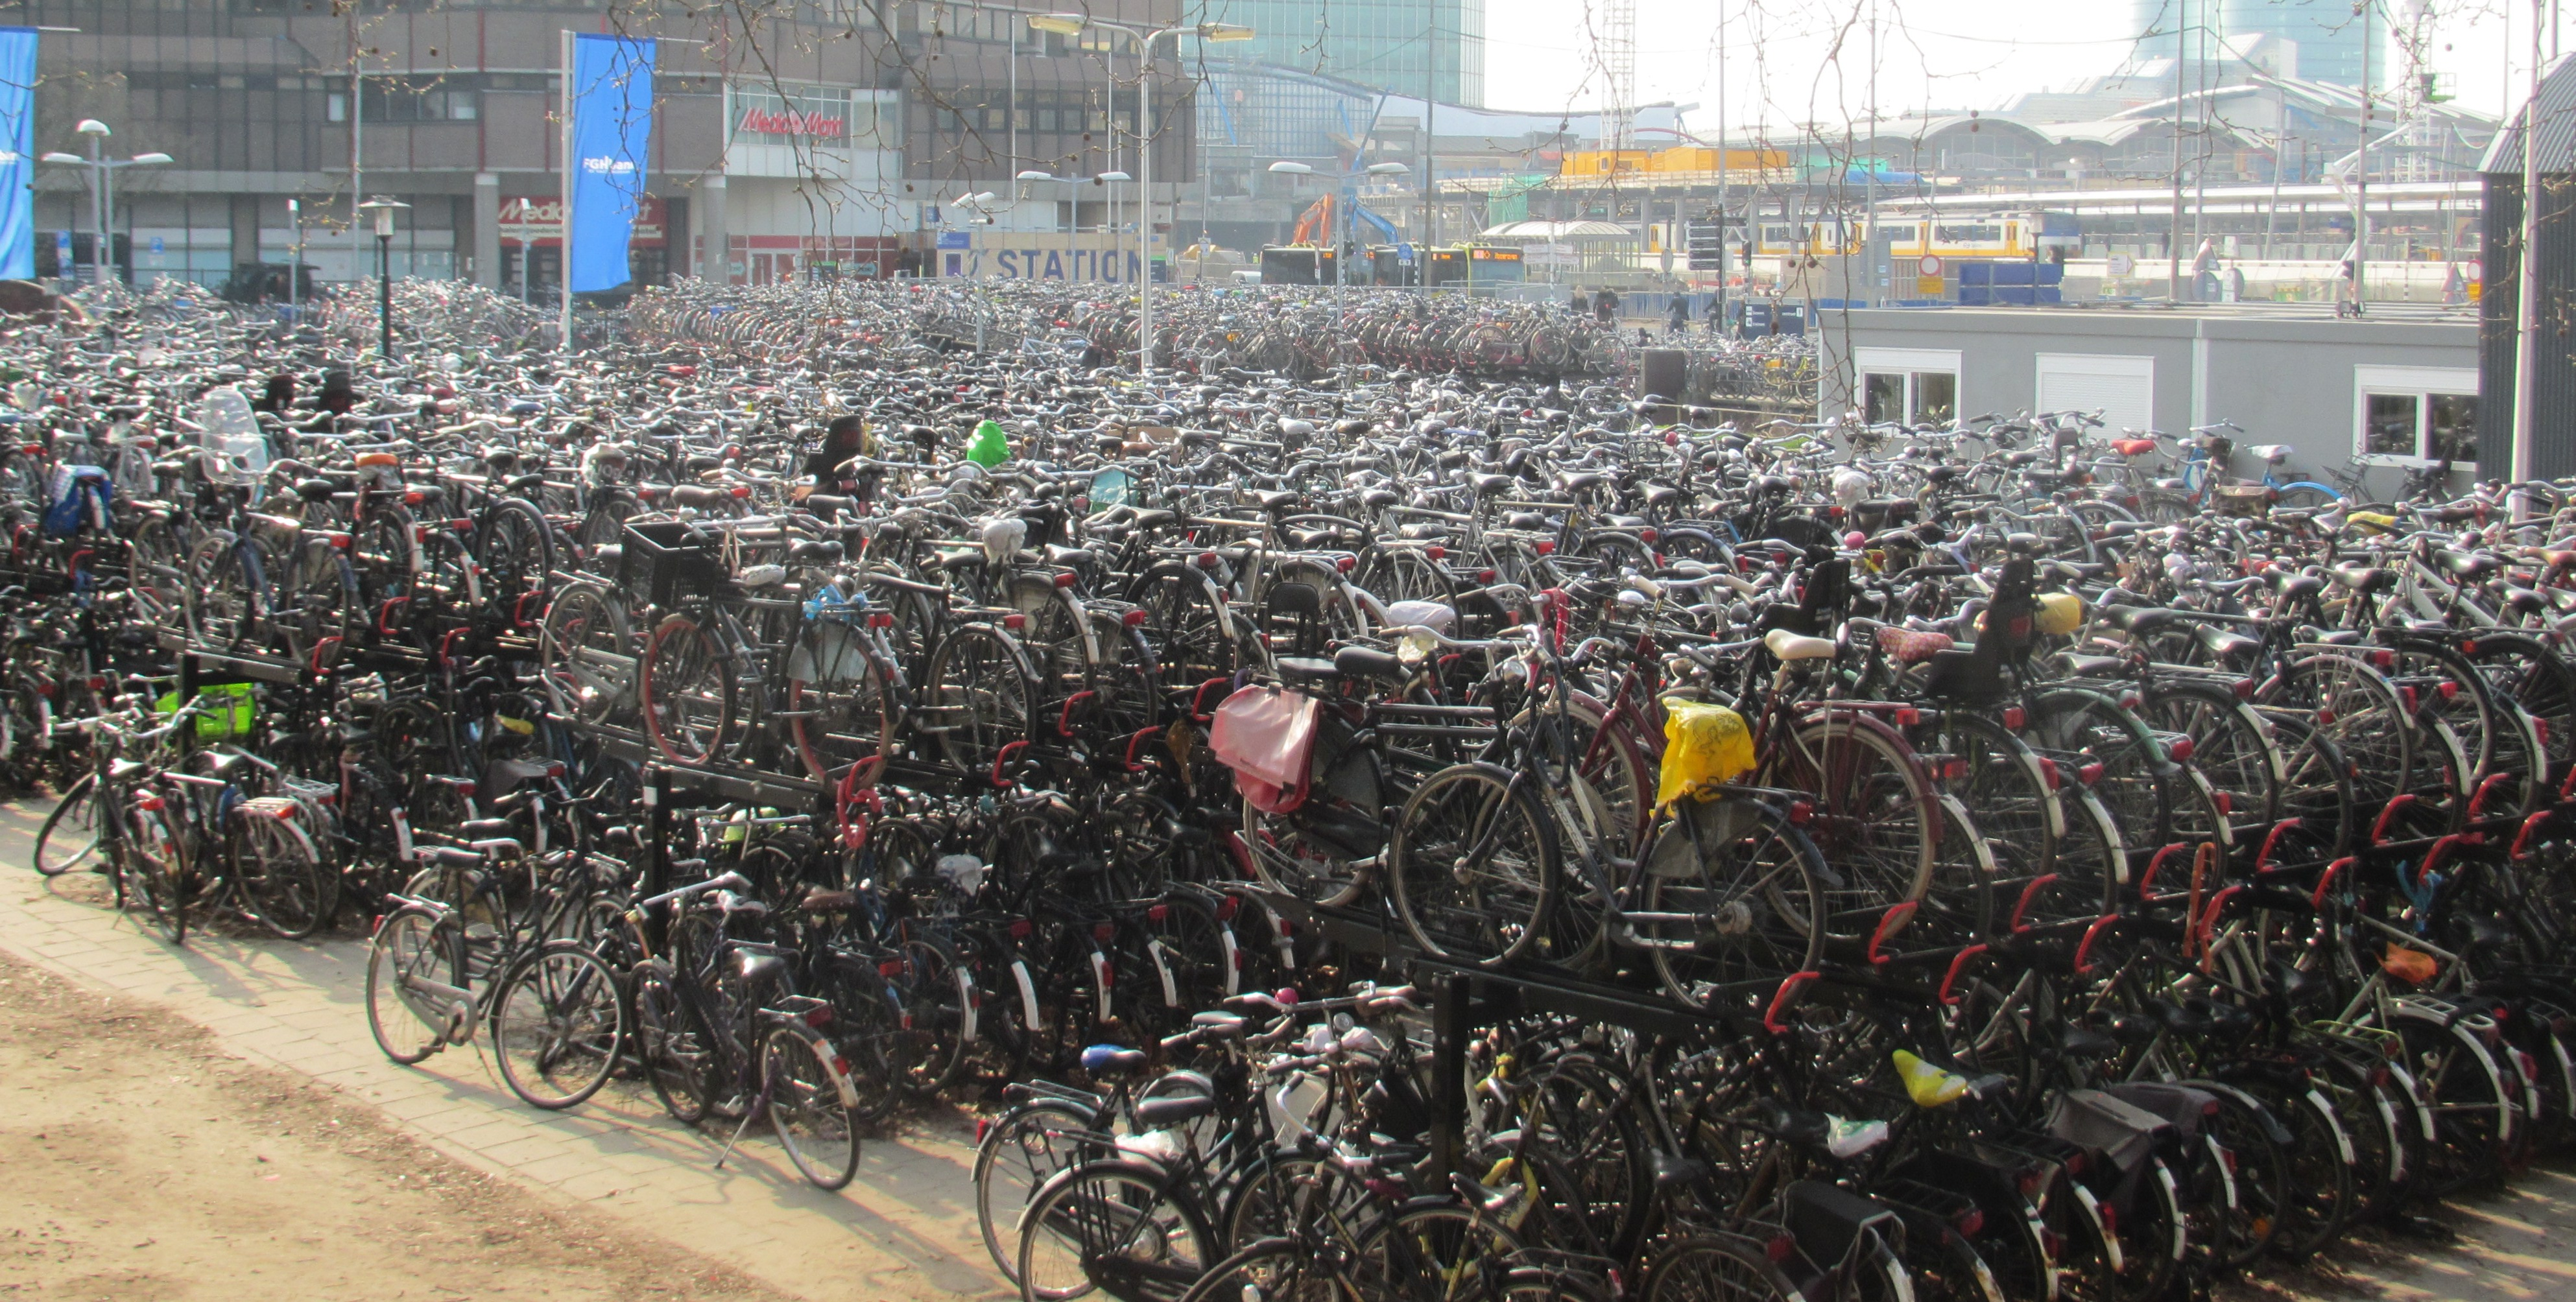 Utrecht Station Cycle Parking Is Absolutely Astonishing